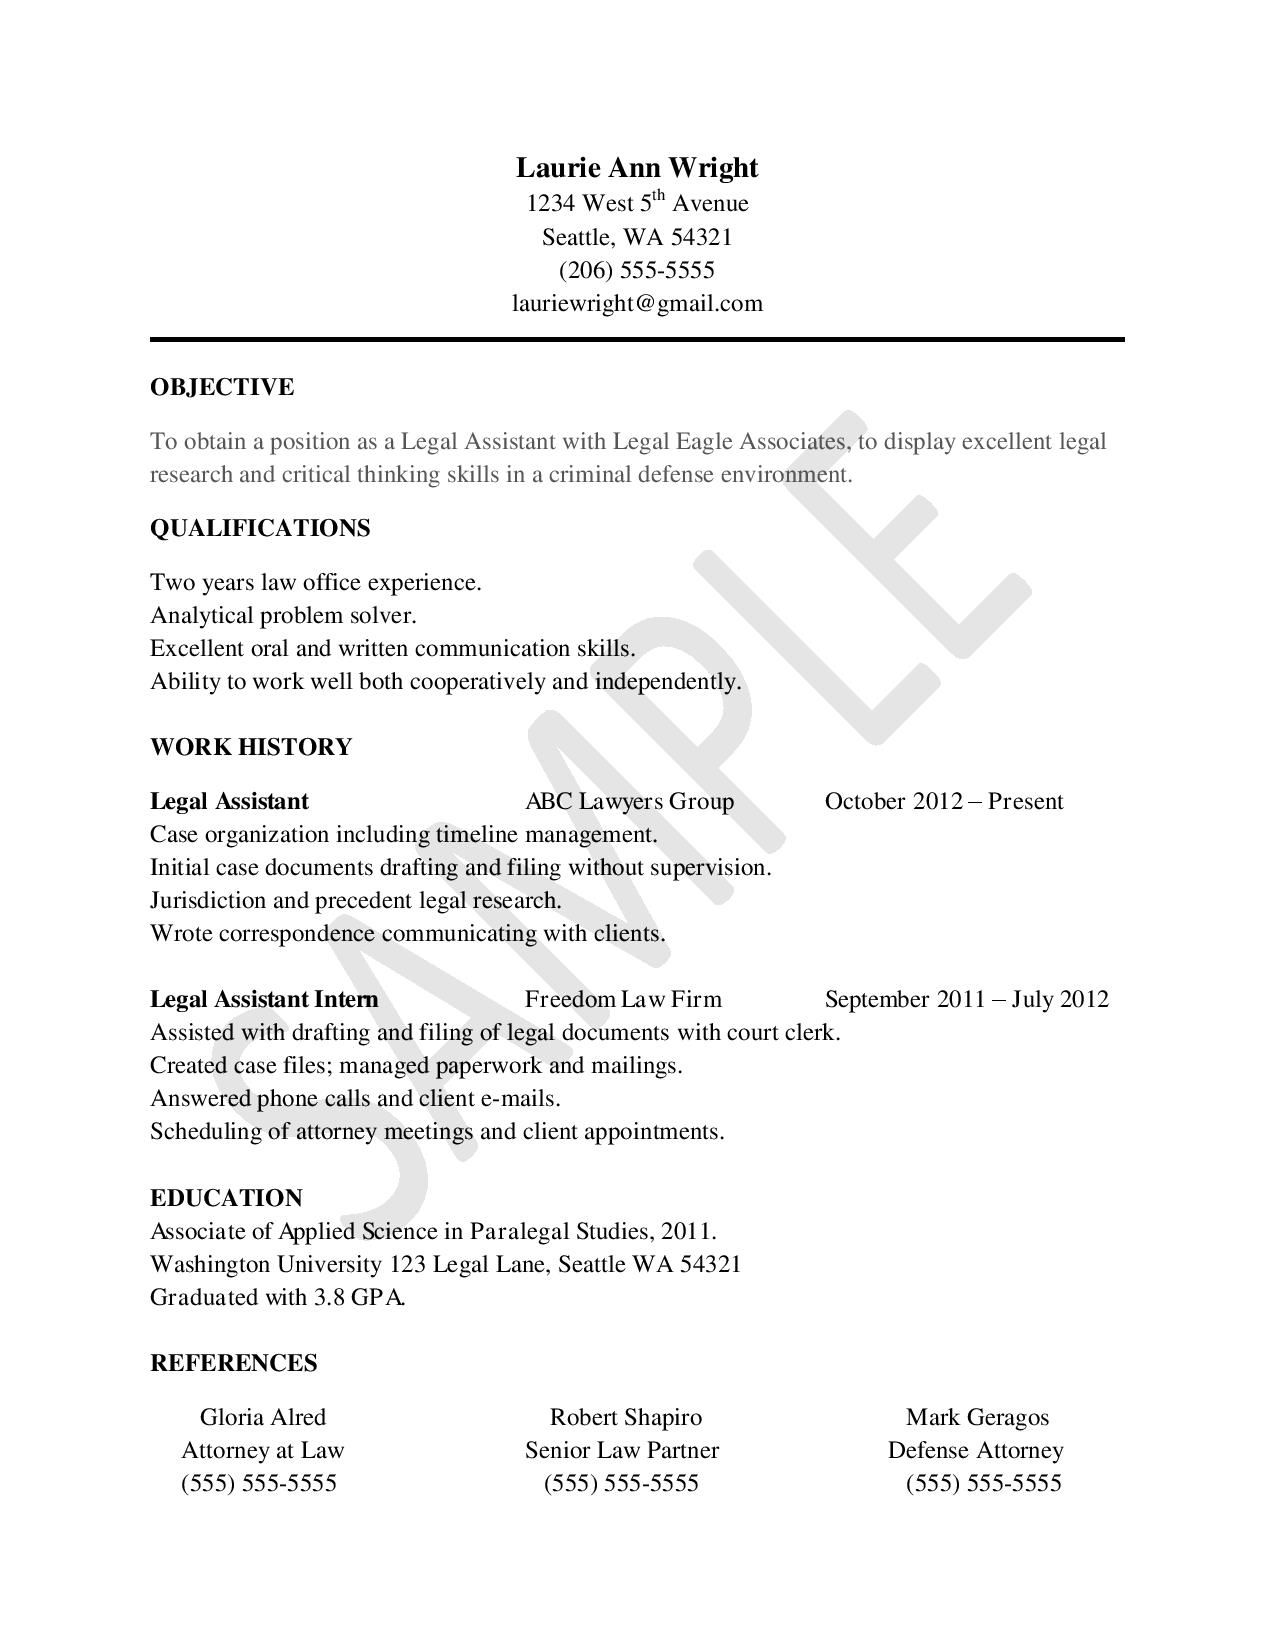 Sample Resume For Legal Assistants Legal Assistant Info